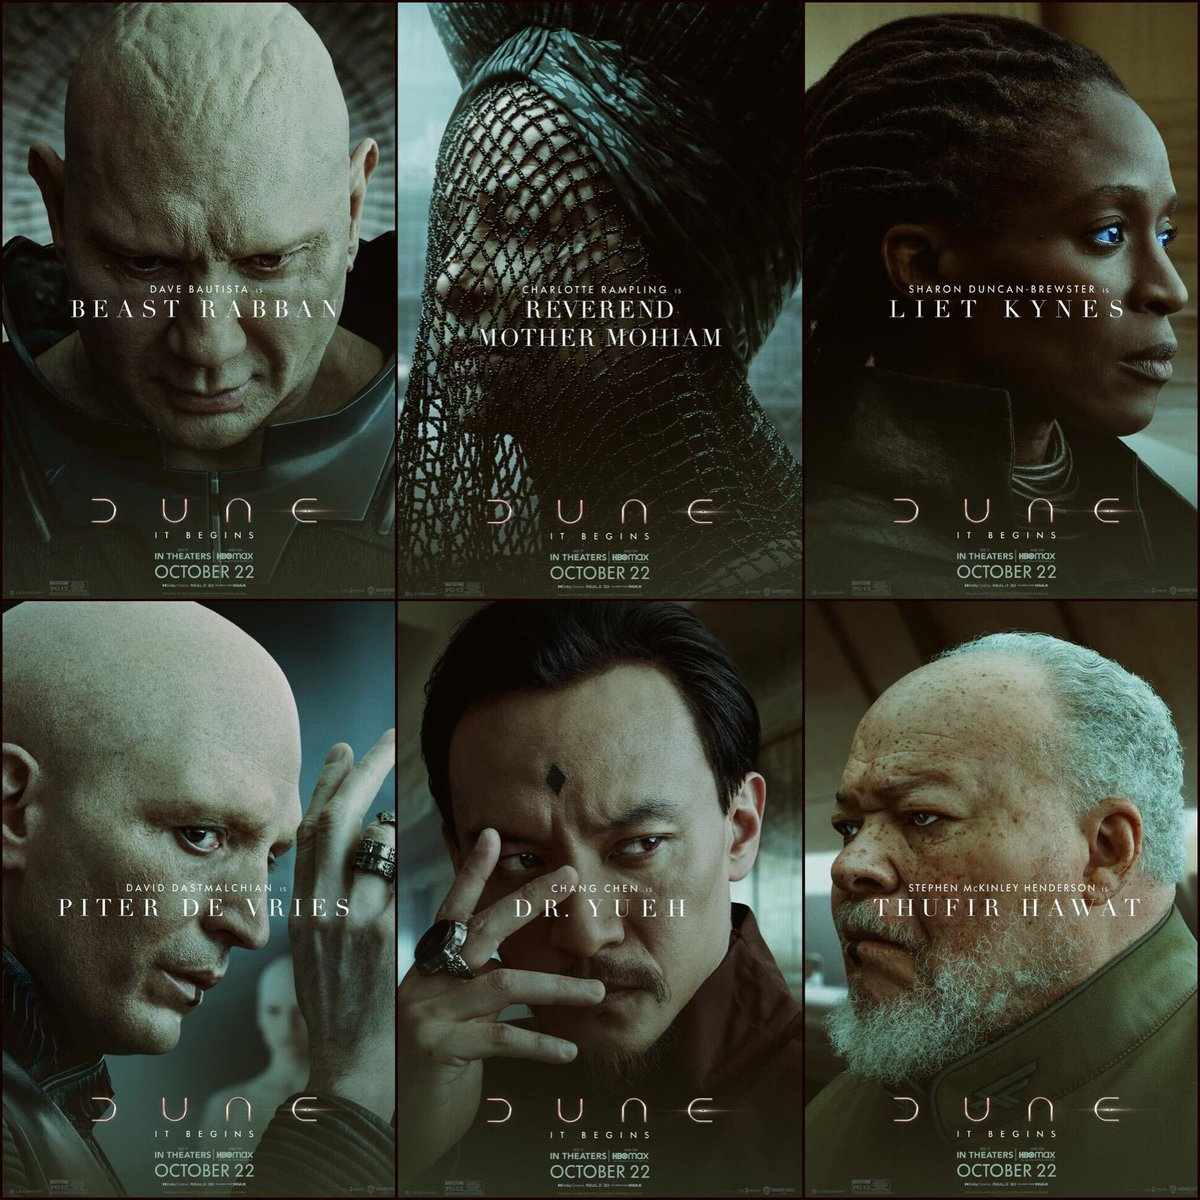 """Rotten Tomatoes on Twitter: """"Dave Bautista, Charlotte Rampling, Sharon  Duncan-Brewster, David Dastmalchian, Chang Chen, and Stephen McKinley  Henderson get all-new character posters for #Dune.… https://t.co/qj2t1h7m8x"""""""